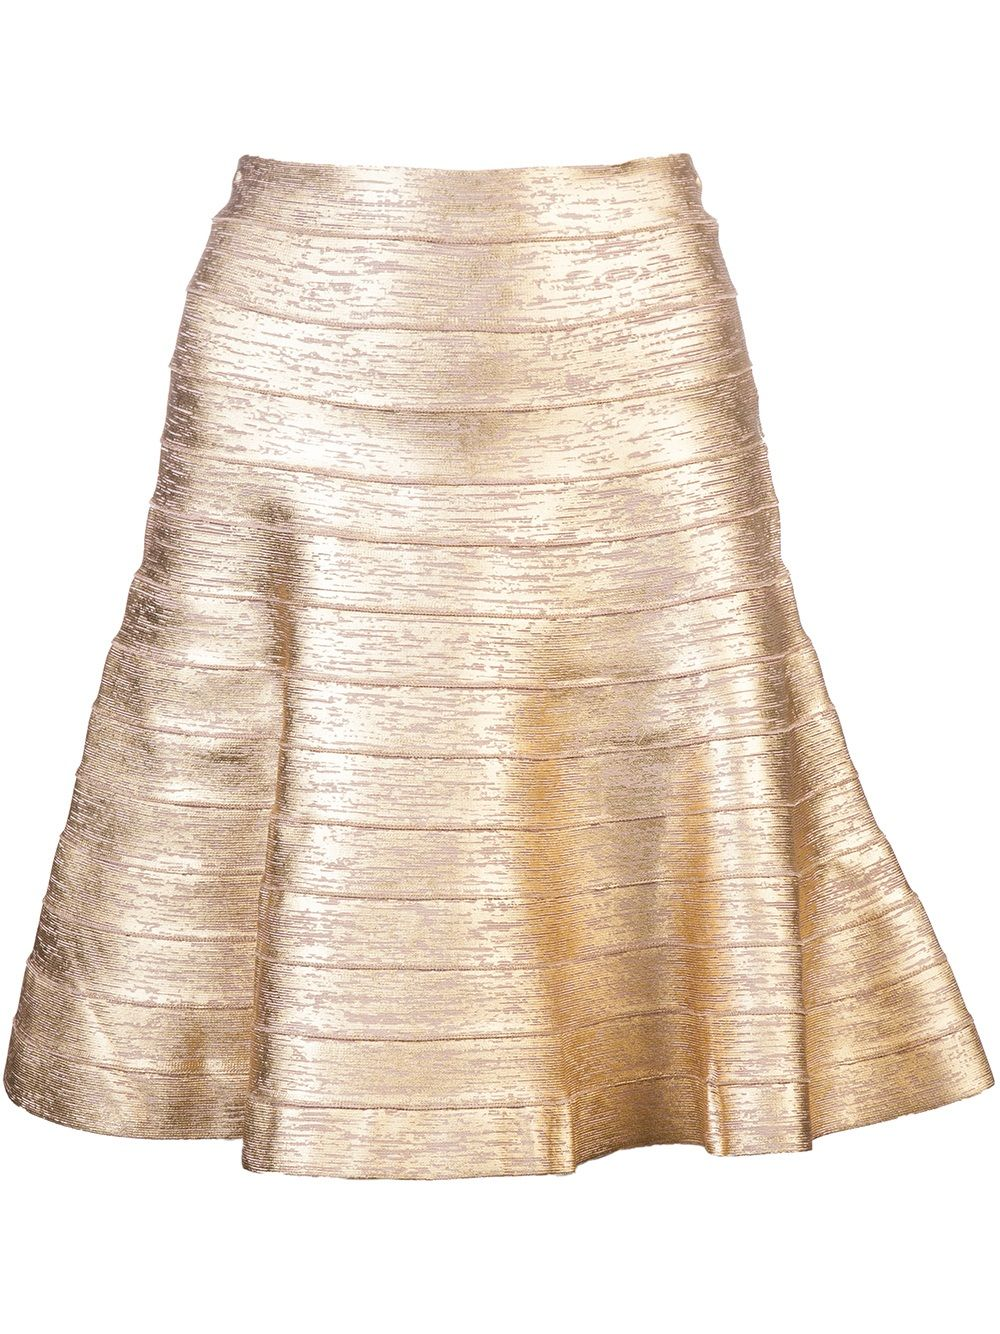 a43c24ce09b2 Hervé Léger Fit N' Flare Bandage Skirt in Gold Champagne. | Fun ...